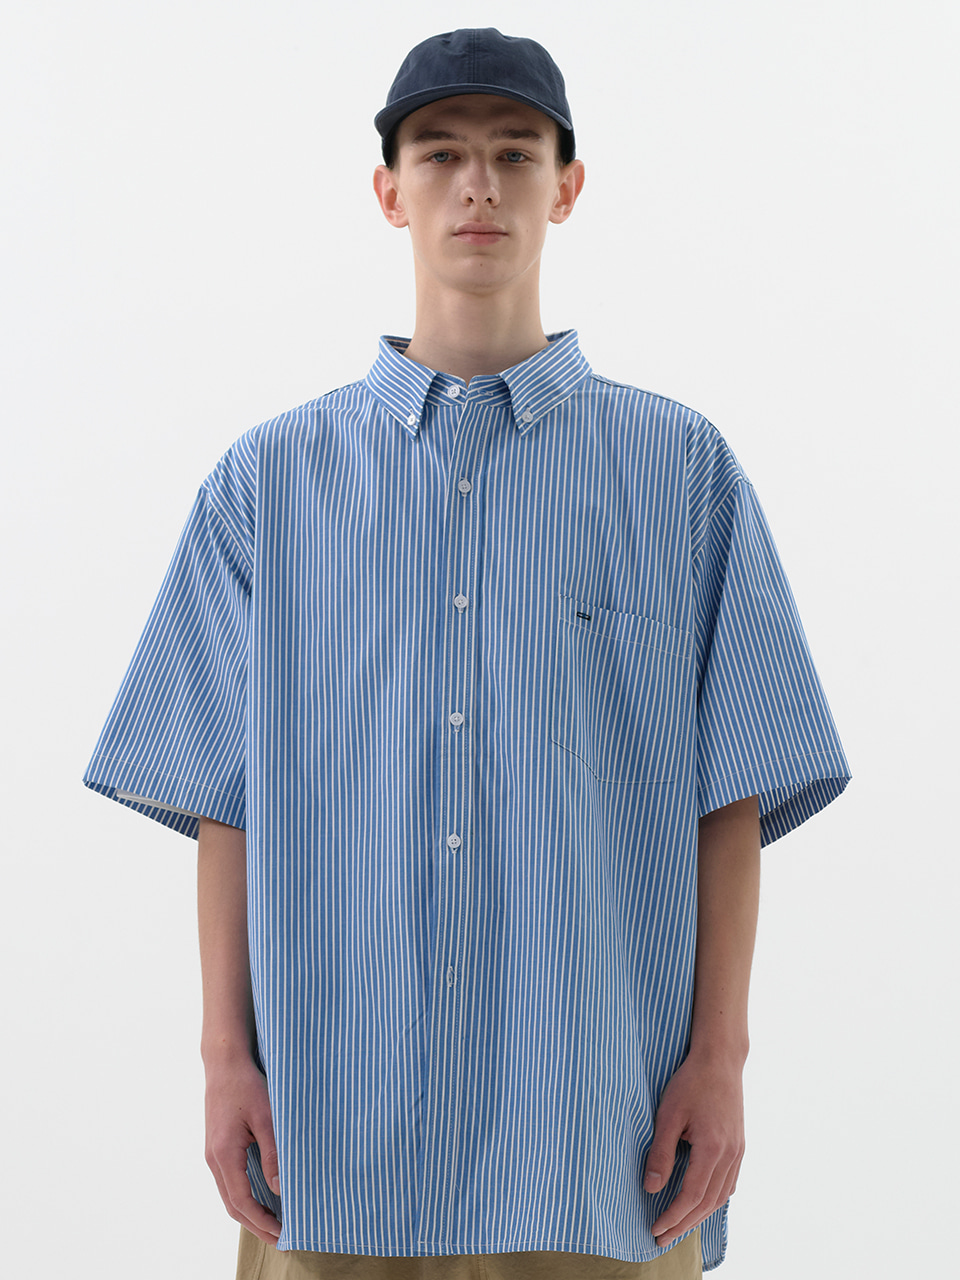 SOUNDSLIFE - [5/12(수) 예약배송] Short Sleeve Shirt Big Boy Fit Blue